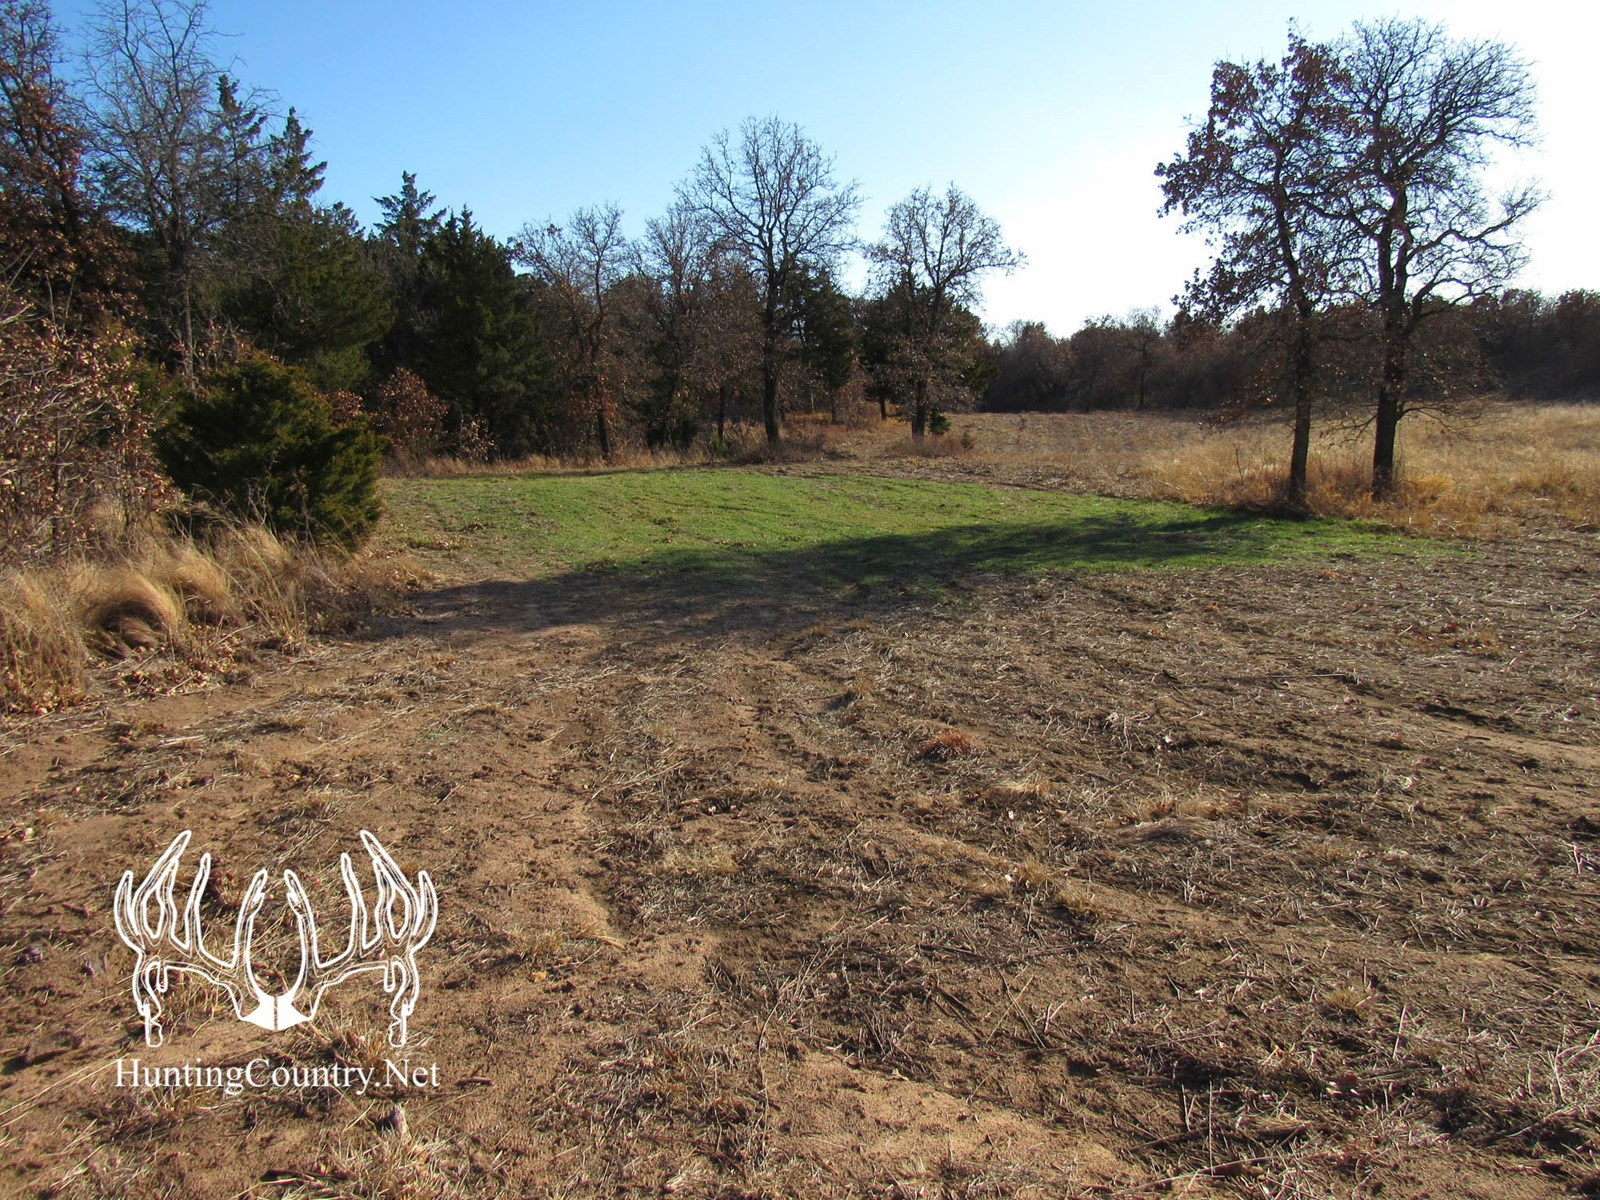 40 acres m/l MAJOR COUNTY, OKLAHOMA LAND for SALE